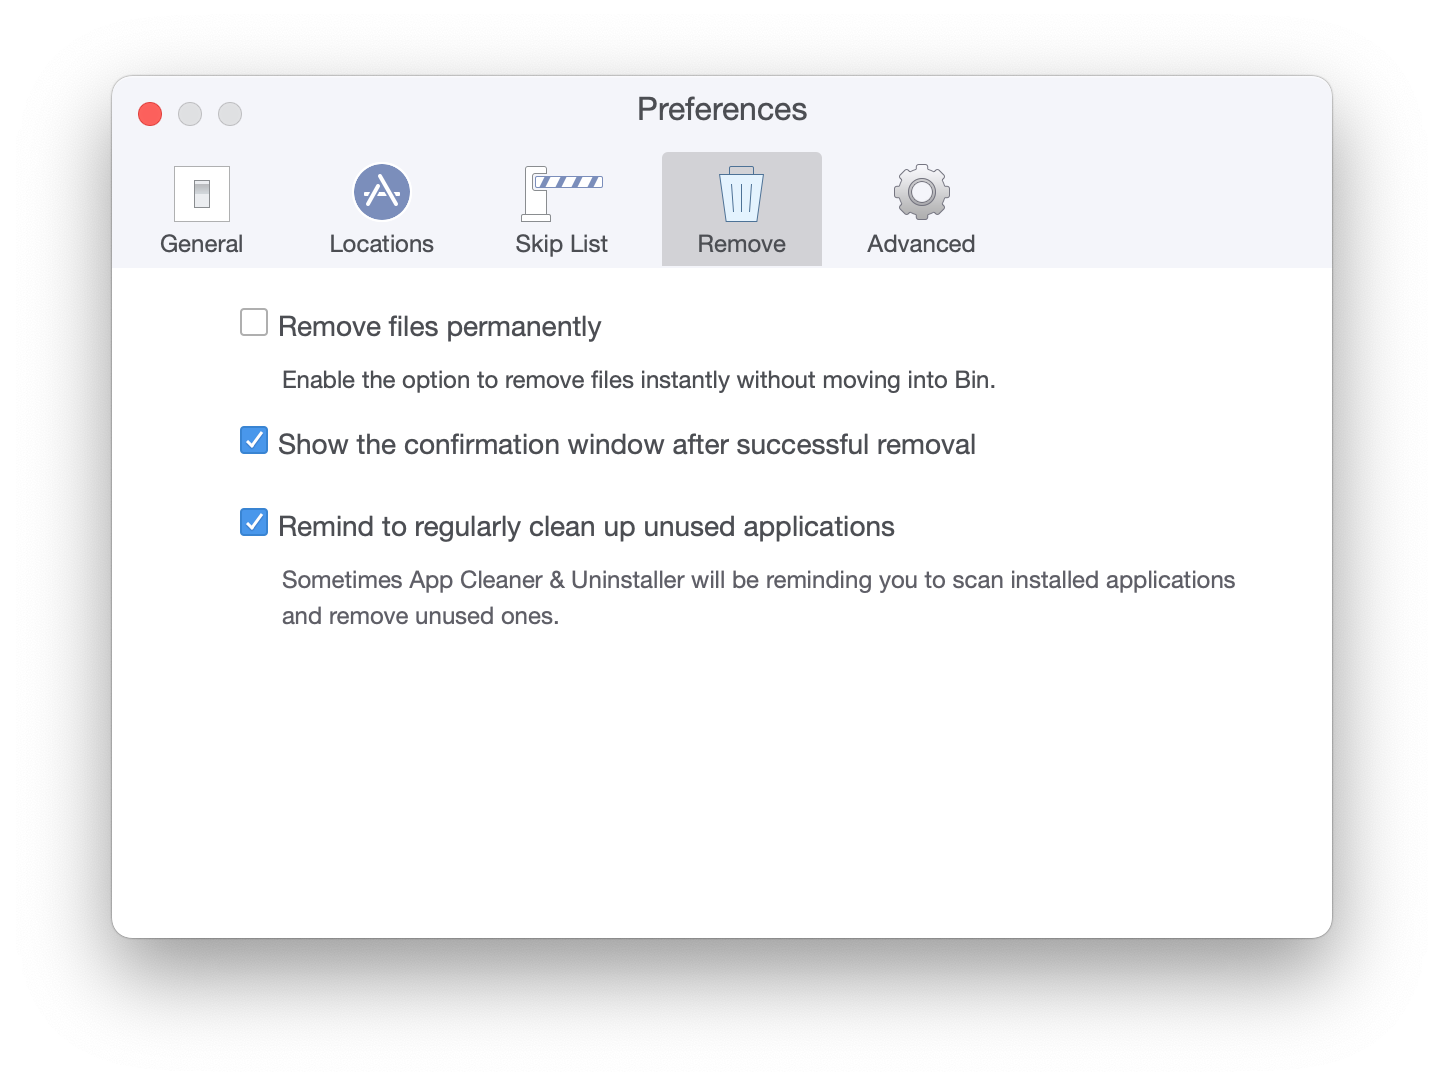 removal preferences in App Cleaner & Uninstaller